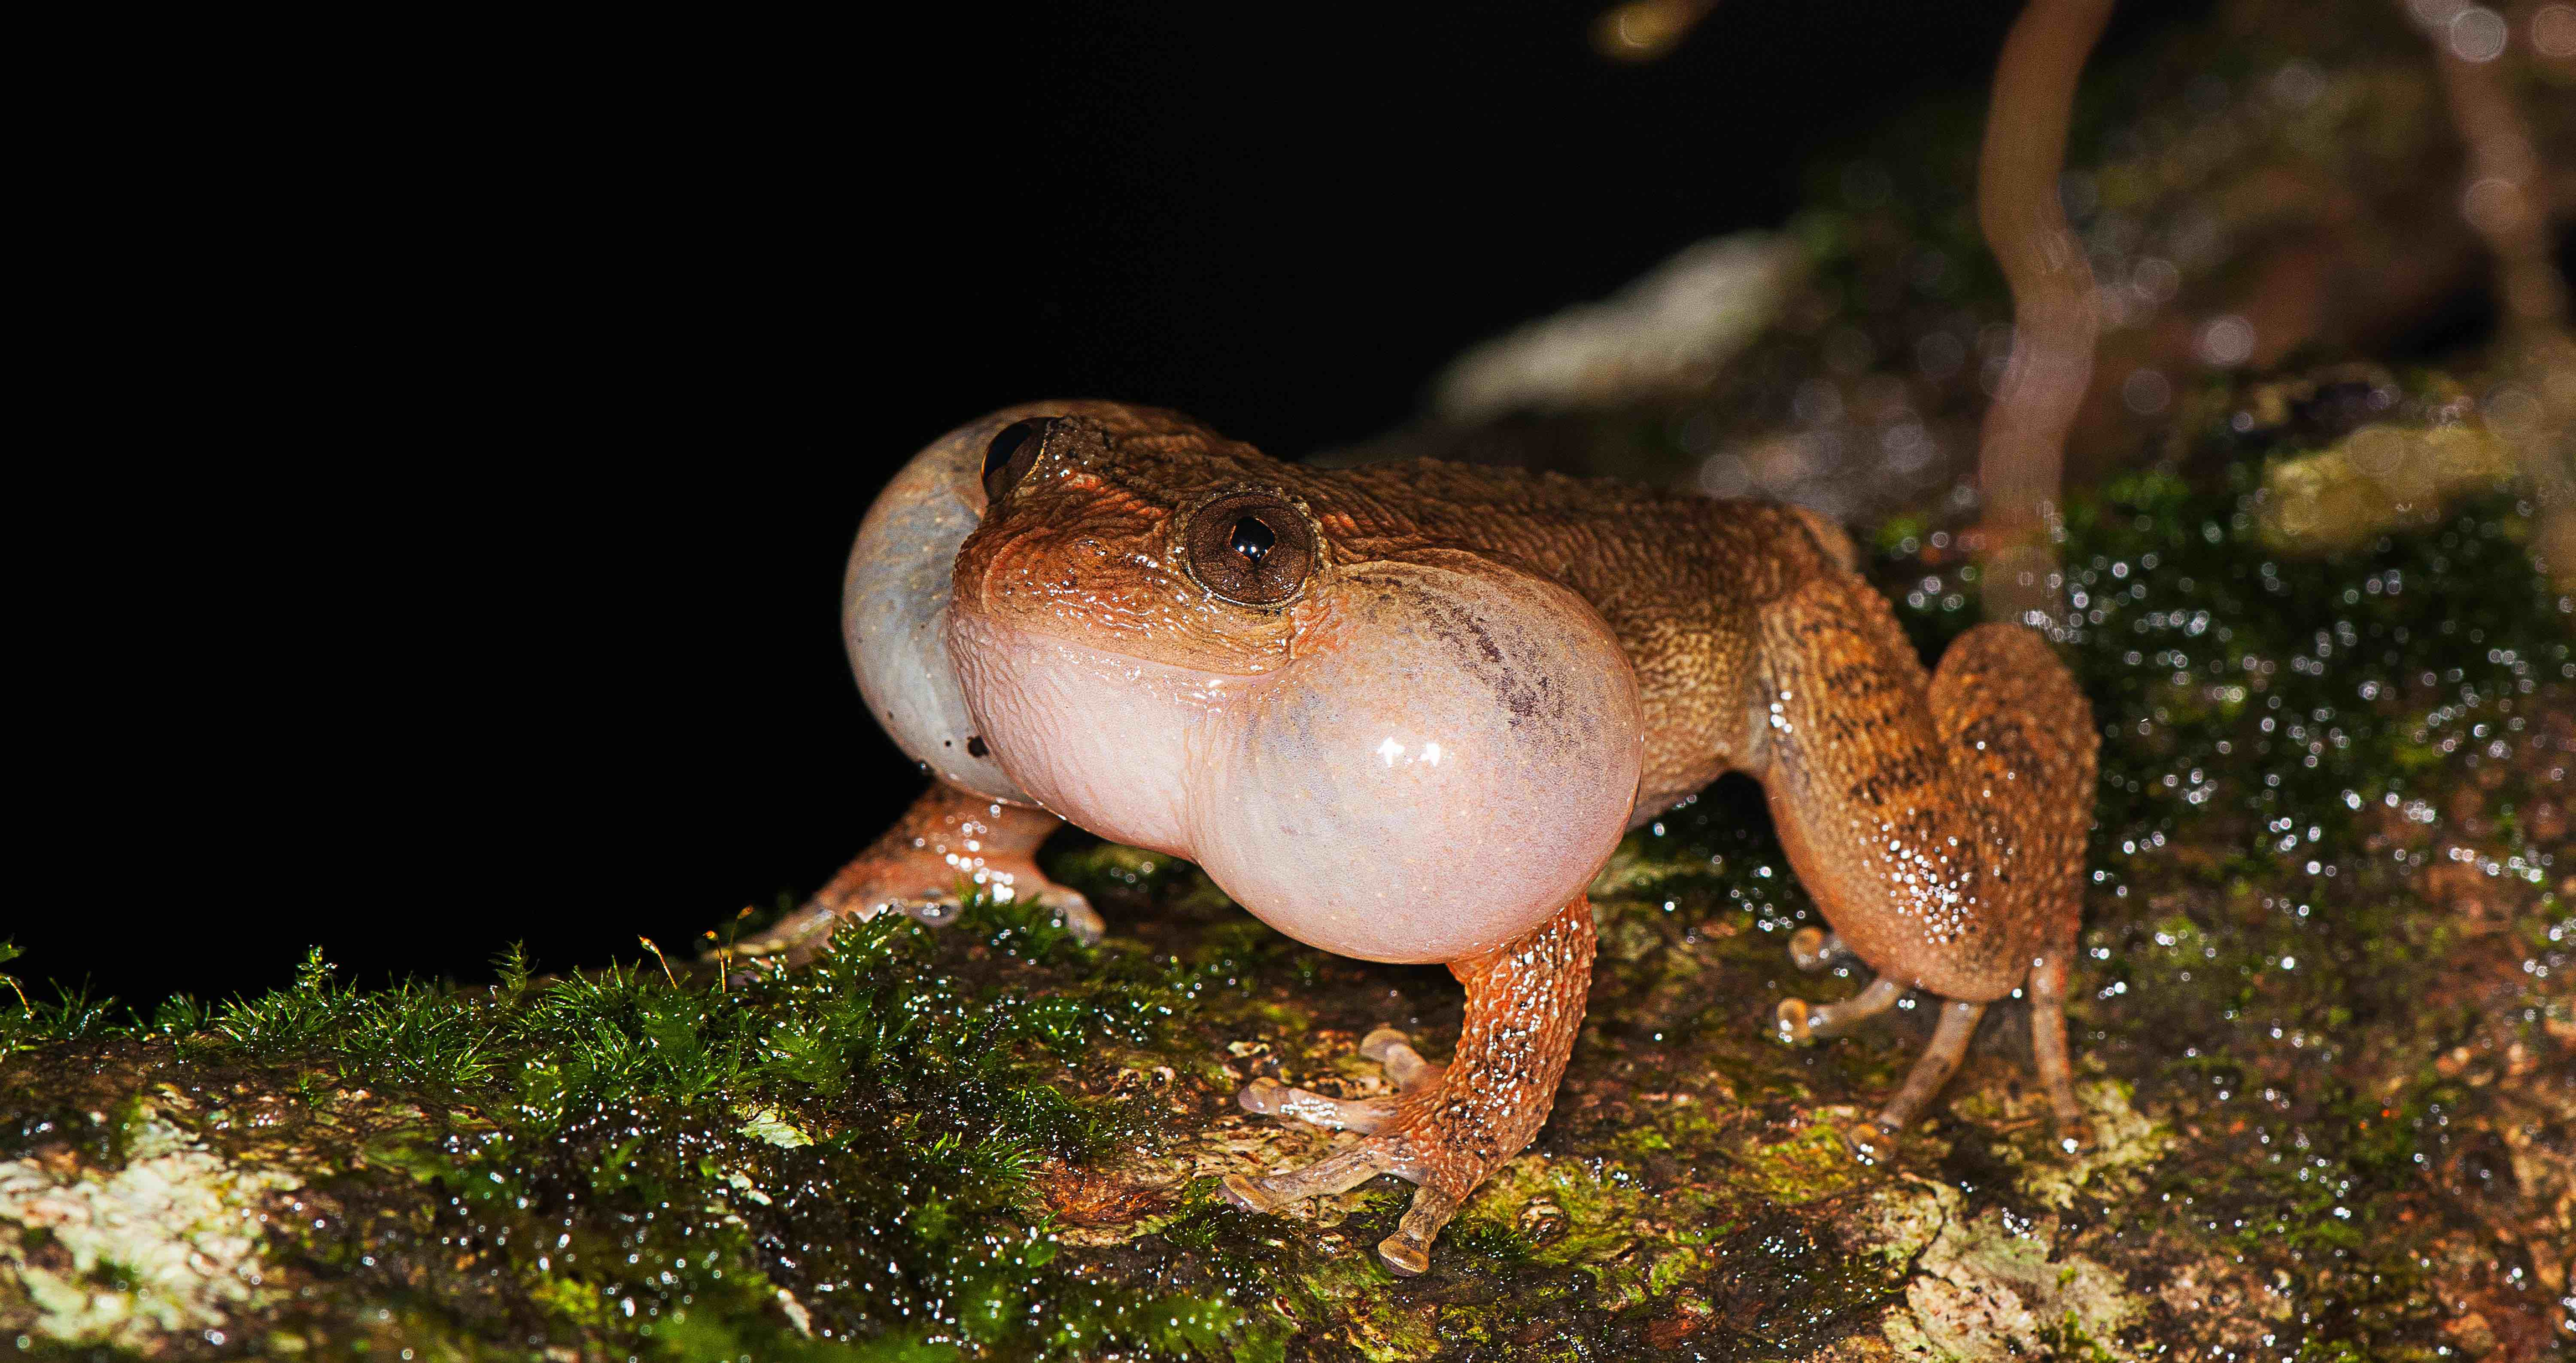 Male Bombay Night frog found calling from a fallen tree trunk. Photo by SD Biju.